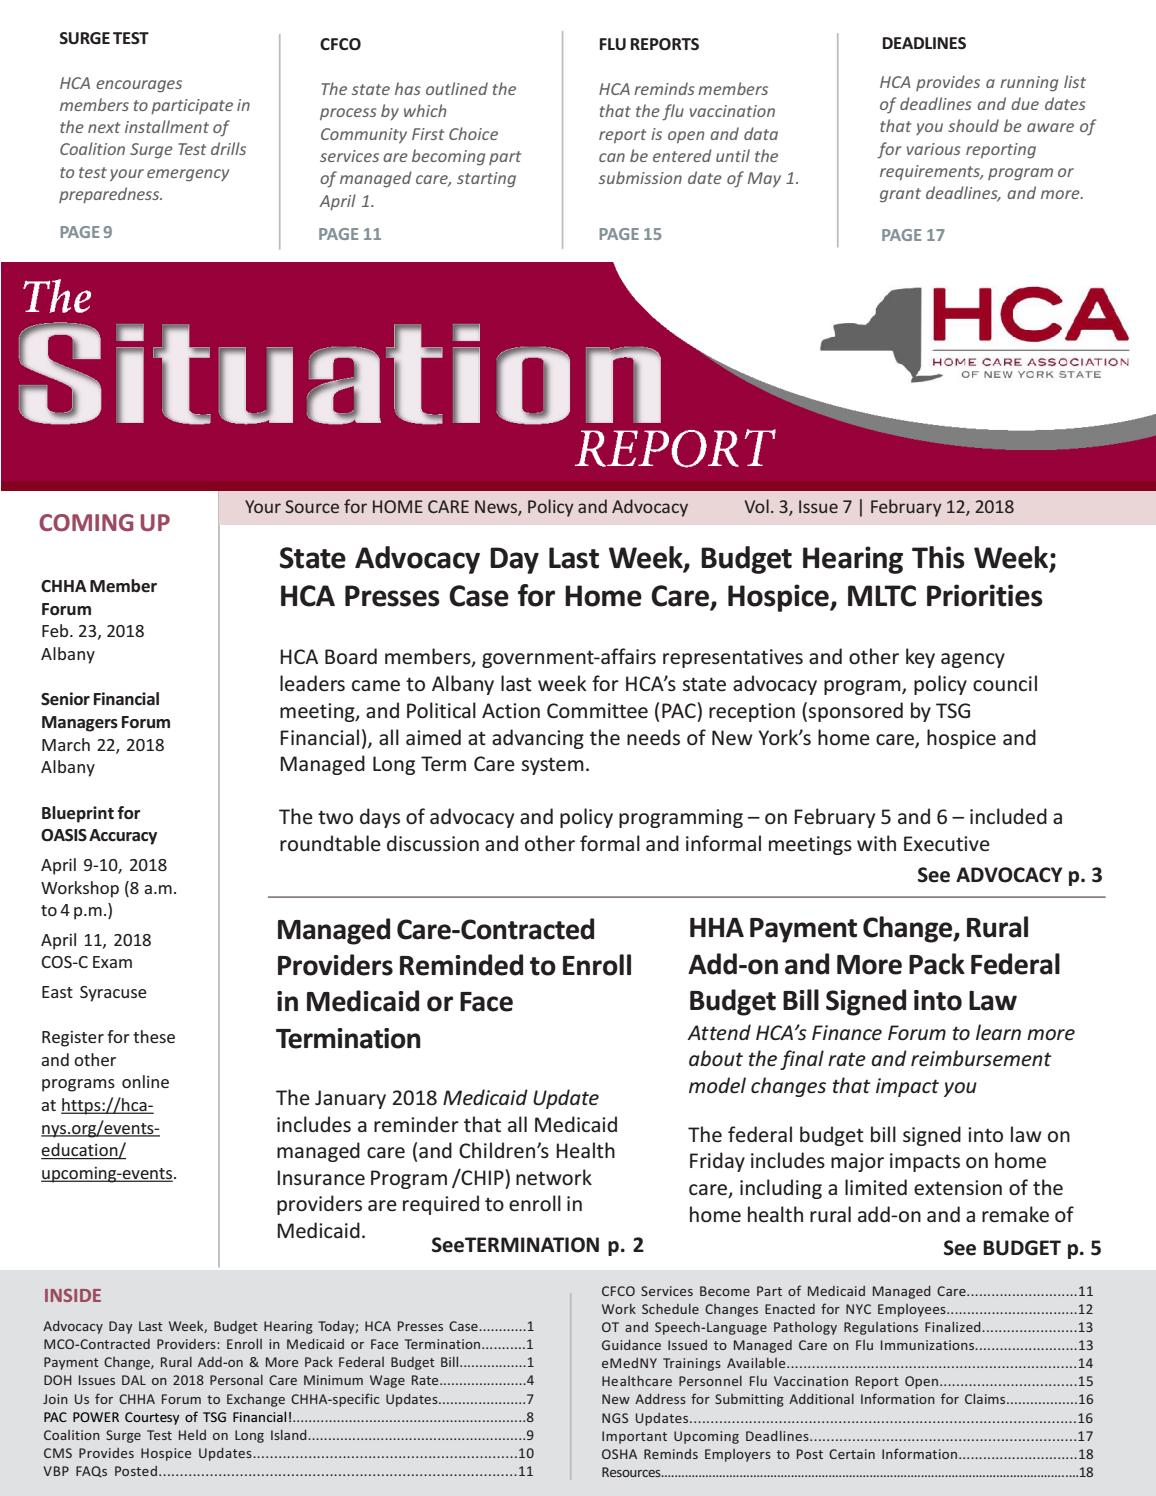 Feb 12 2018 edition of the situation report by home care feb 12 2018 edition of the situation report by home care association of new york state issuu malvernweather Images